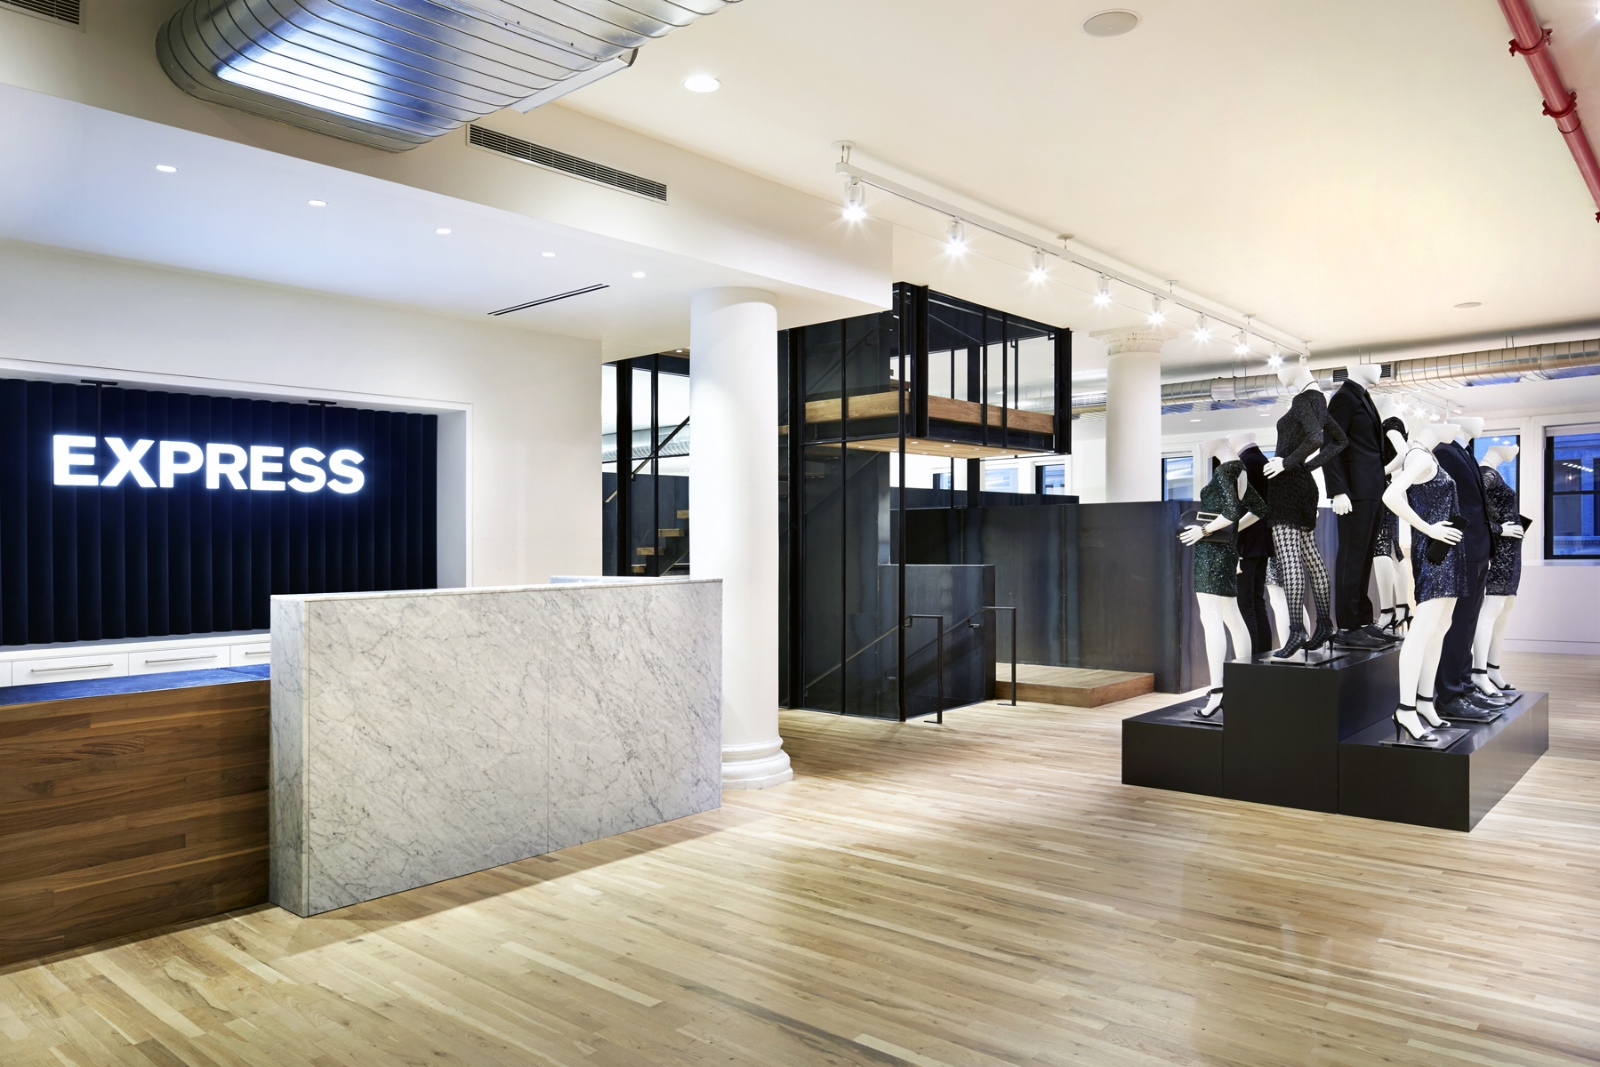 res4-resolution-4-architecture-modern-commercial-express-office-design-studio-interior-01.jpg